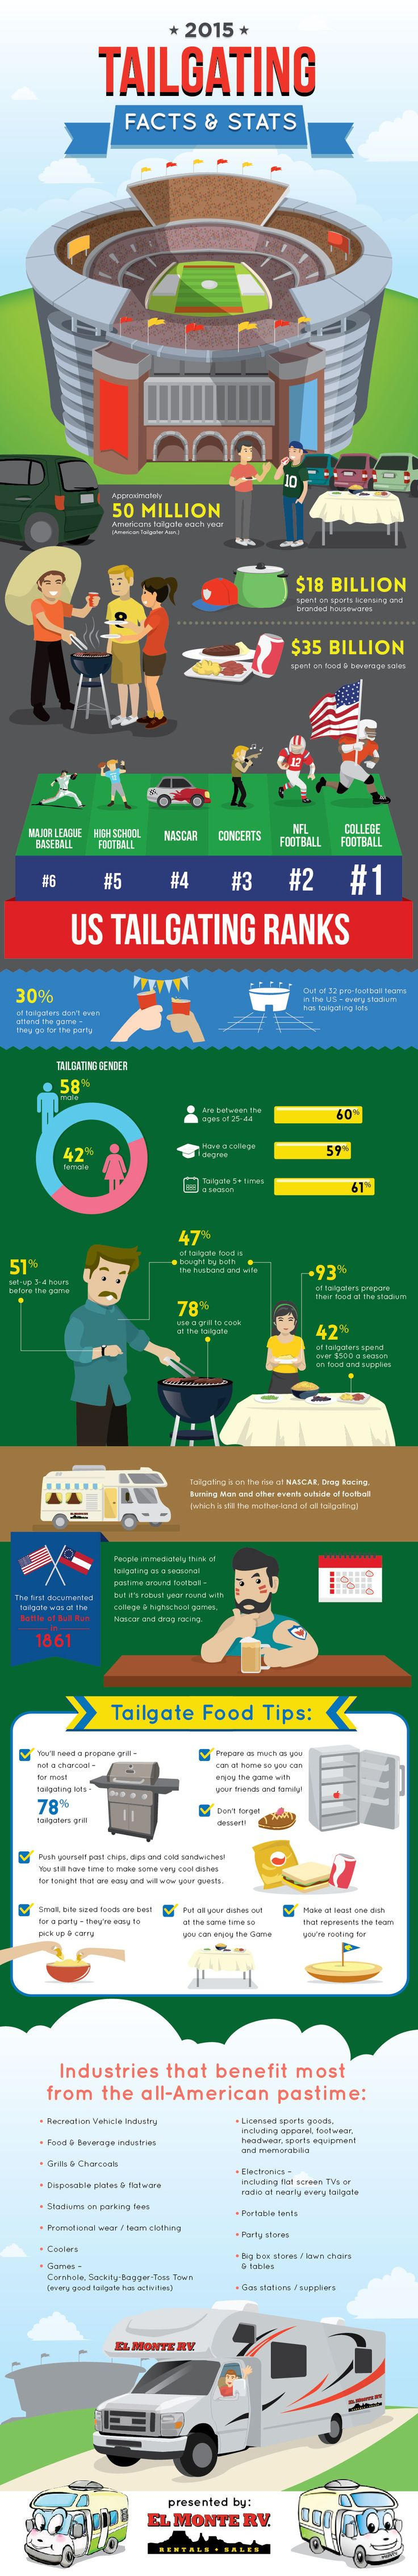 Tailgating infographic